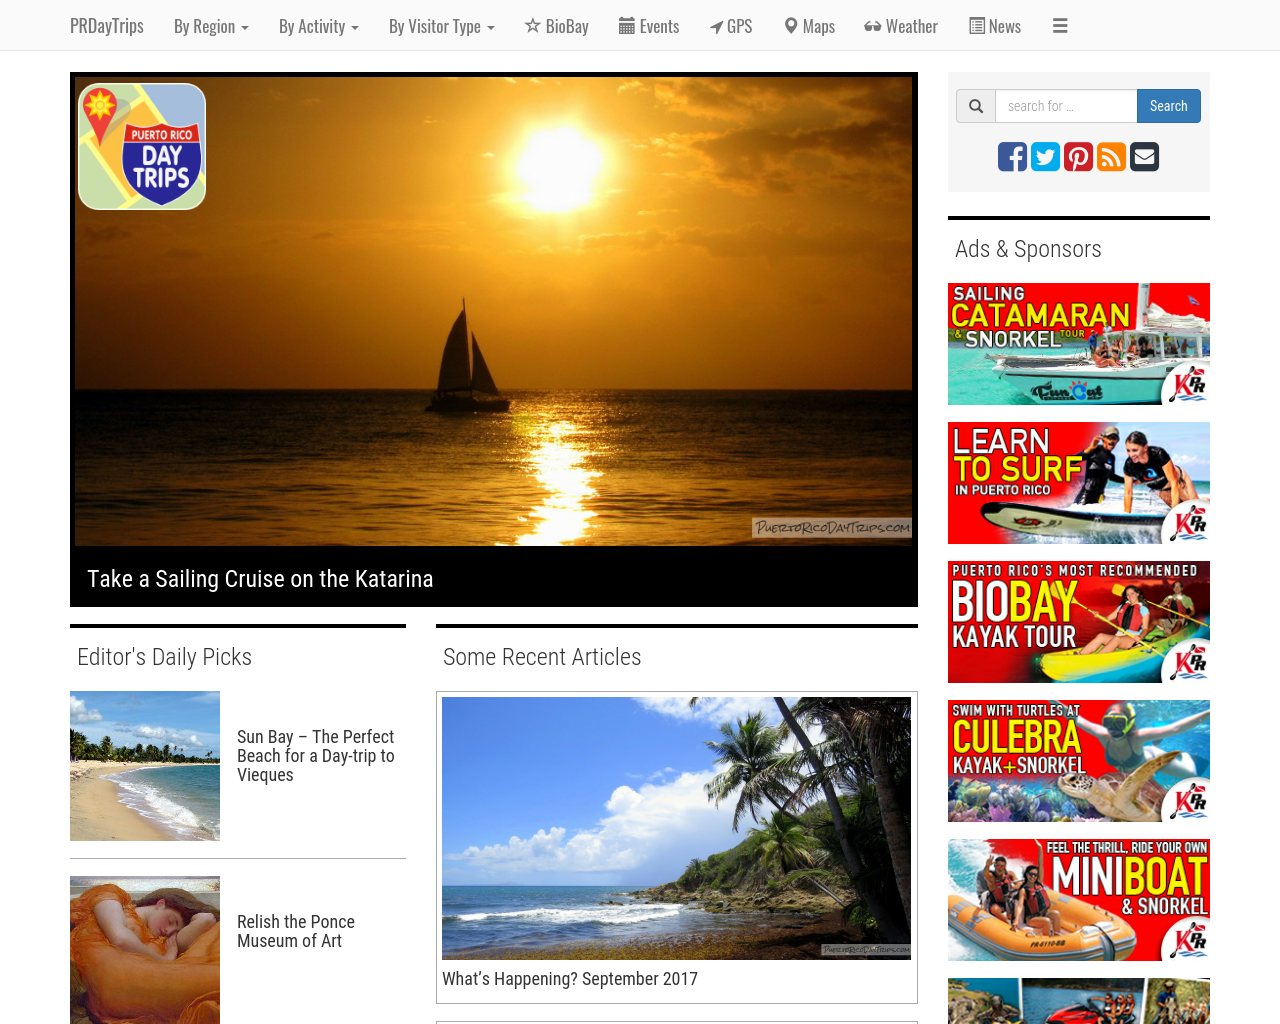 Puerto-Rico-Day-Trips-Advertising-Reviews-Pricing